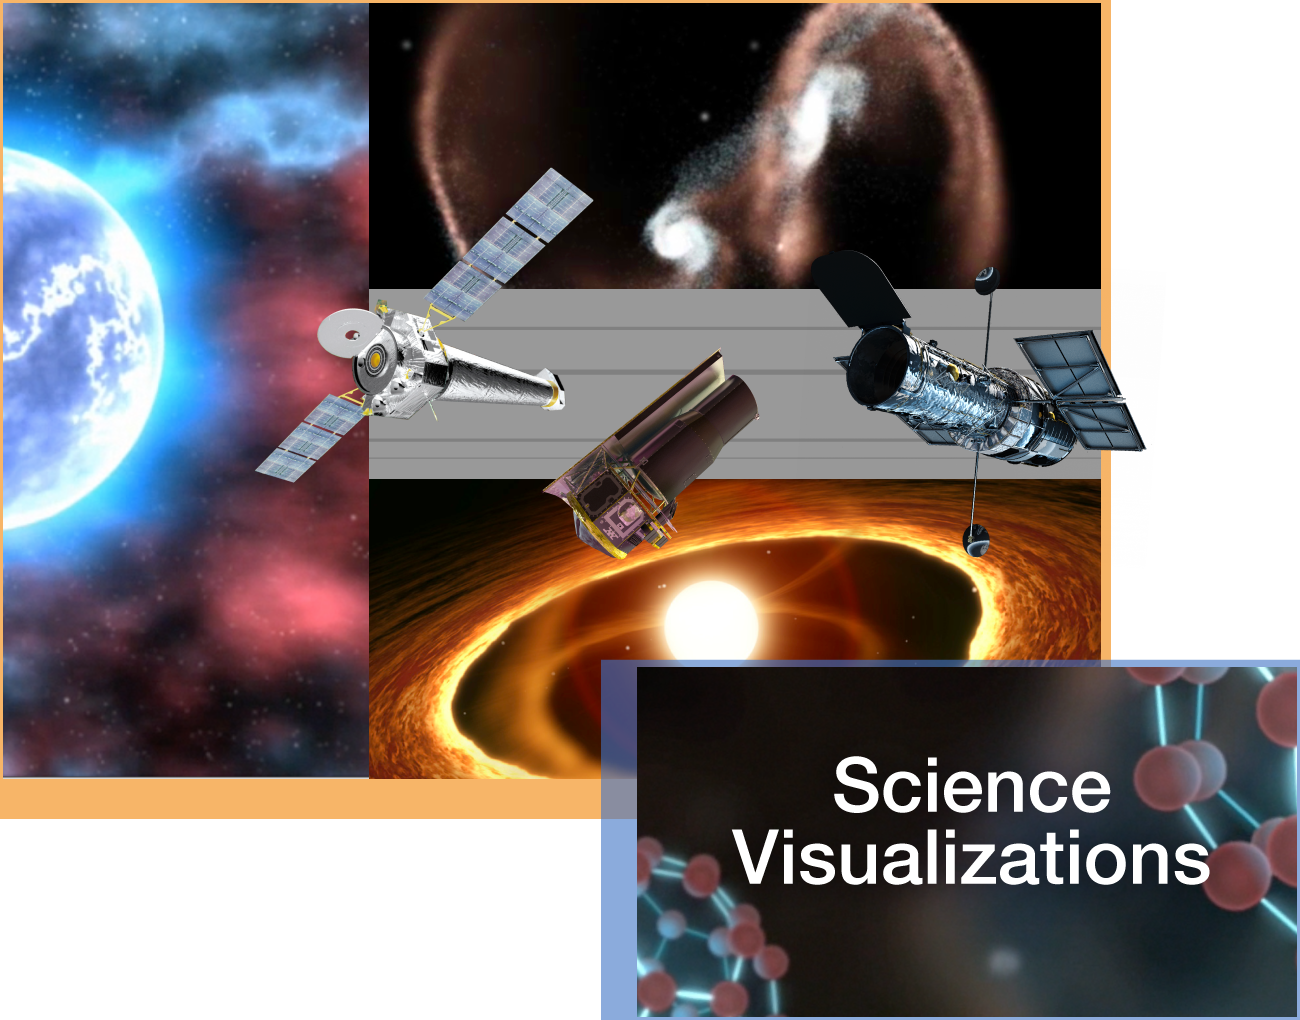 - Visualizations are powerful tools for communicating NASA Astrophysics. Based on the data collected by astronomical observatories, these visualizations are grounded in science data and are accurate representations of the cosmos. Informal educators can use these visualizations within their astronomy activities, presentations, and displays.Audience: All LearnersWebsite: Astrovisualization platformVideo: Flight Through the Orion Nebula in Visible and Infrared LightVideo: Shedding New Light on the Whirlpool GalaxyVideo index: Hubble Space Telescope VisualizationsVideo index: Spitzer Space Telescope VisualizationsVideo index: Chandra X-ray Observatory VisualizationsVideo index: Hubble Space Telescope Dome Visualizations